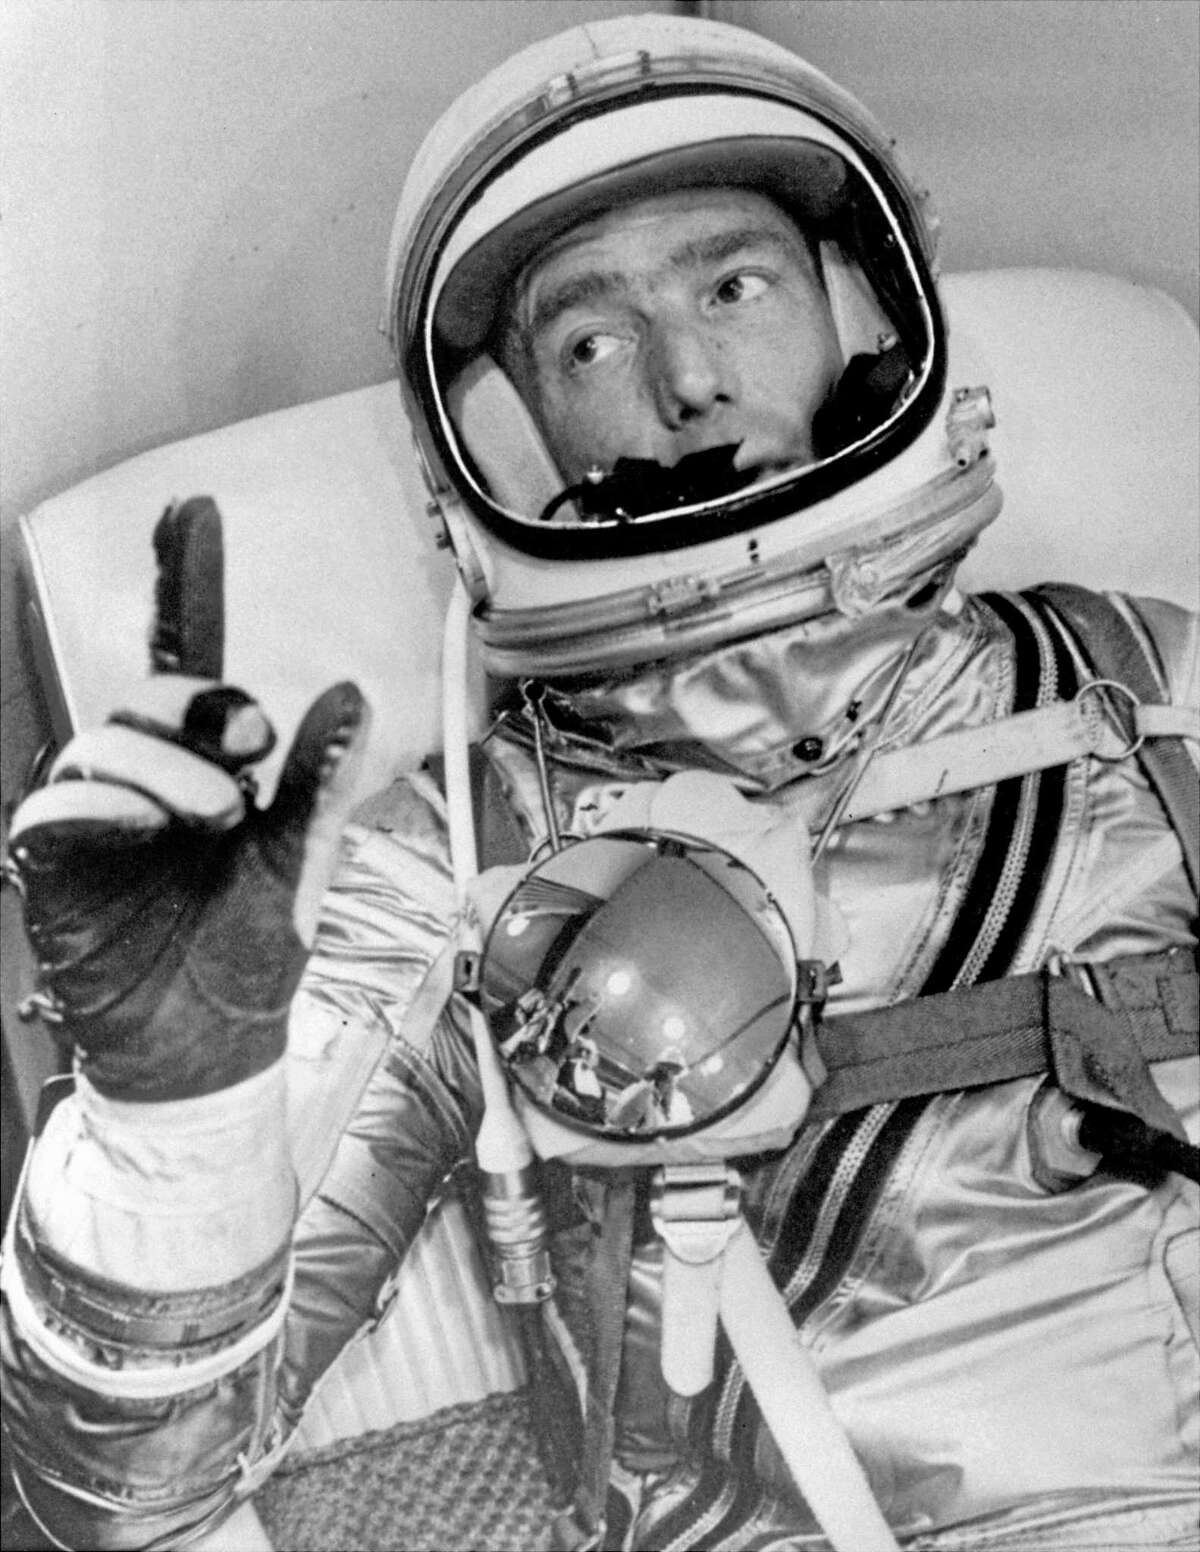 FILE - In this May 24, 1962 file photo provided by NASA, astronaut Scott Carpenter gestures with one hand after donning his space suit in Hangar S prior to being shot into orbit at Cape Canaveral, Fla. Carpenter, the second American to orbit the Earth and first person to explore both the heights of space and depths of the ocean, died Thursday, Oct. 10, 2013 after a stroke. He was 88. (AP photo/NASA, File)